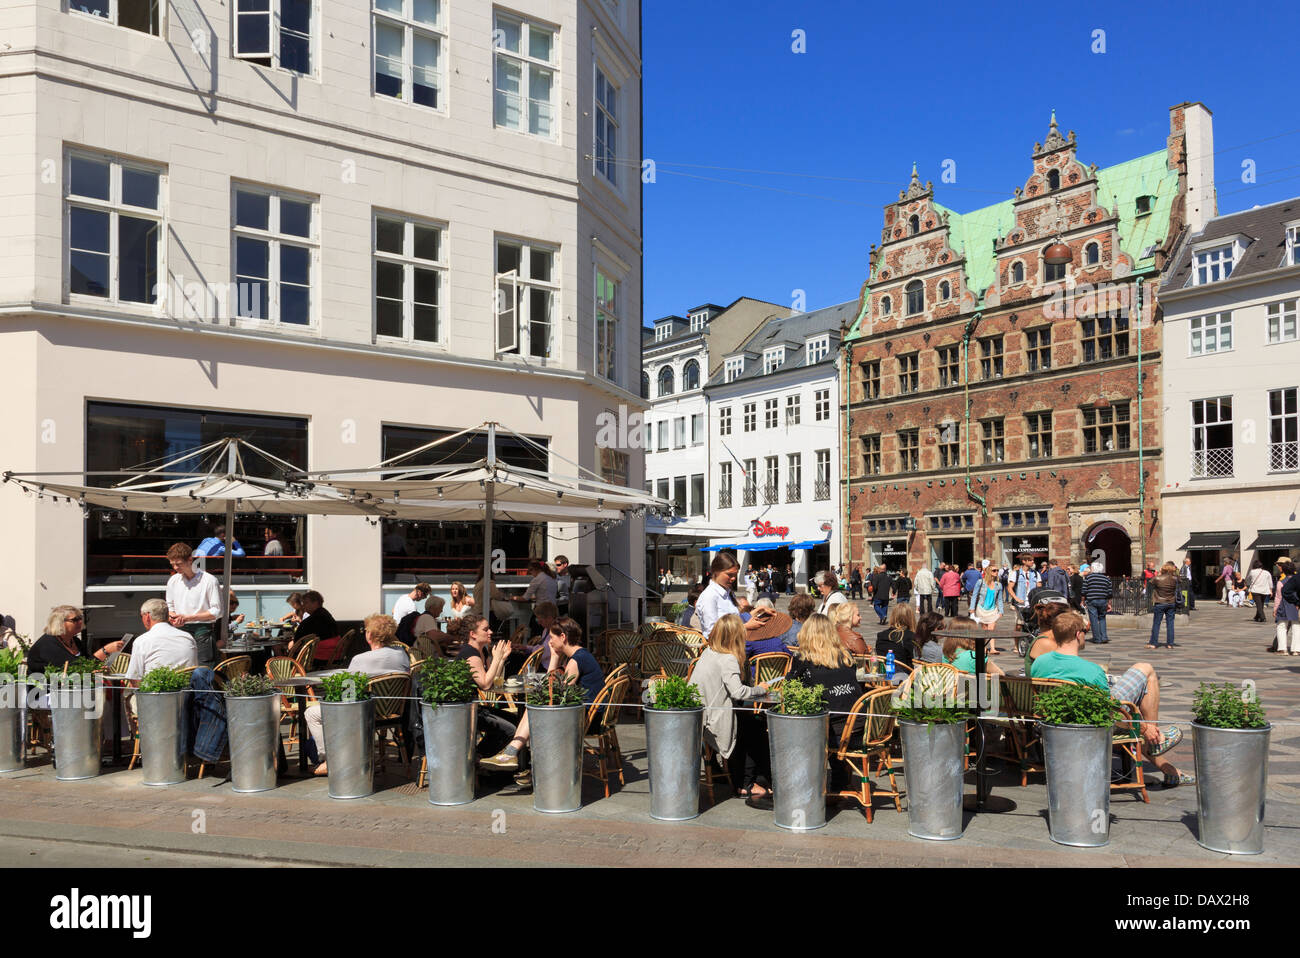 Outdoor café in old Amagertorv Square busy with people. Amager Torv, Copenhagen, Zealand, Denmark, Scandinavia - Stock Image